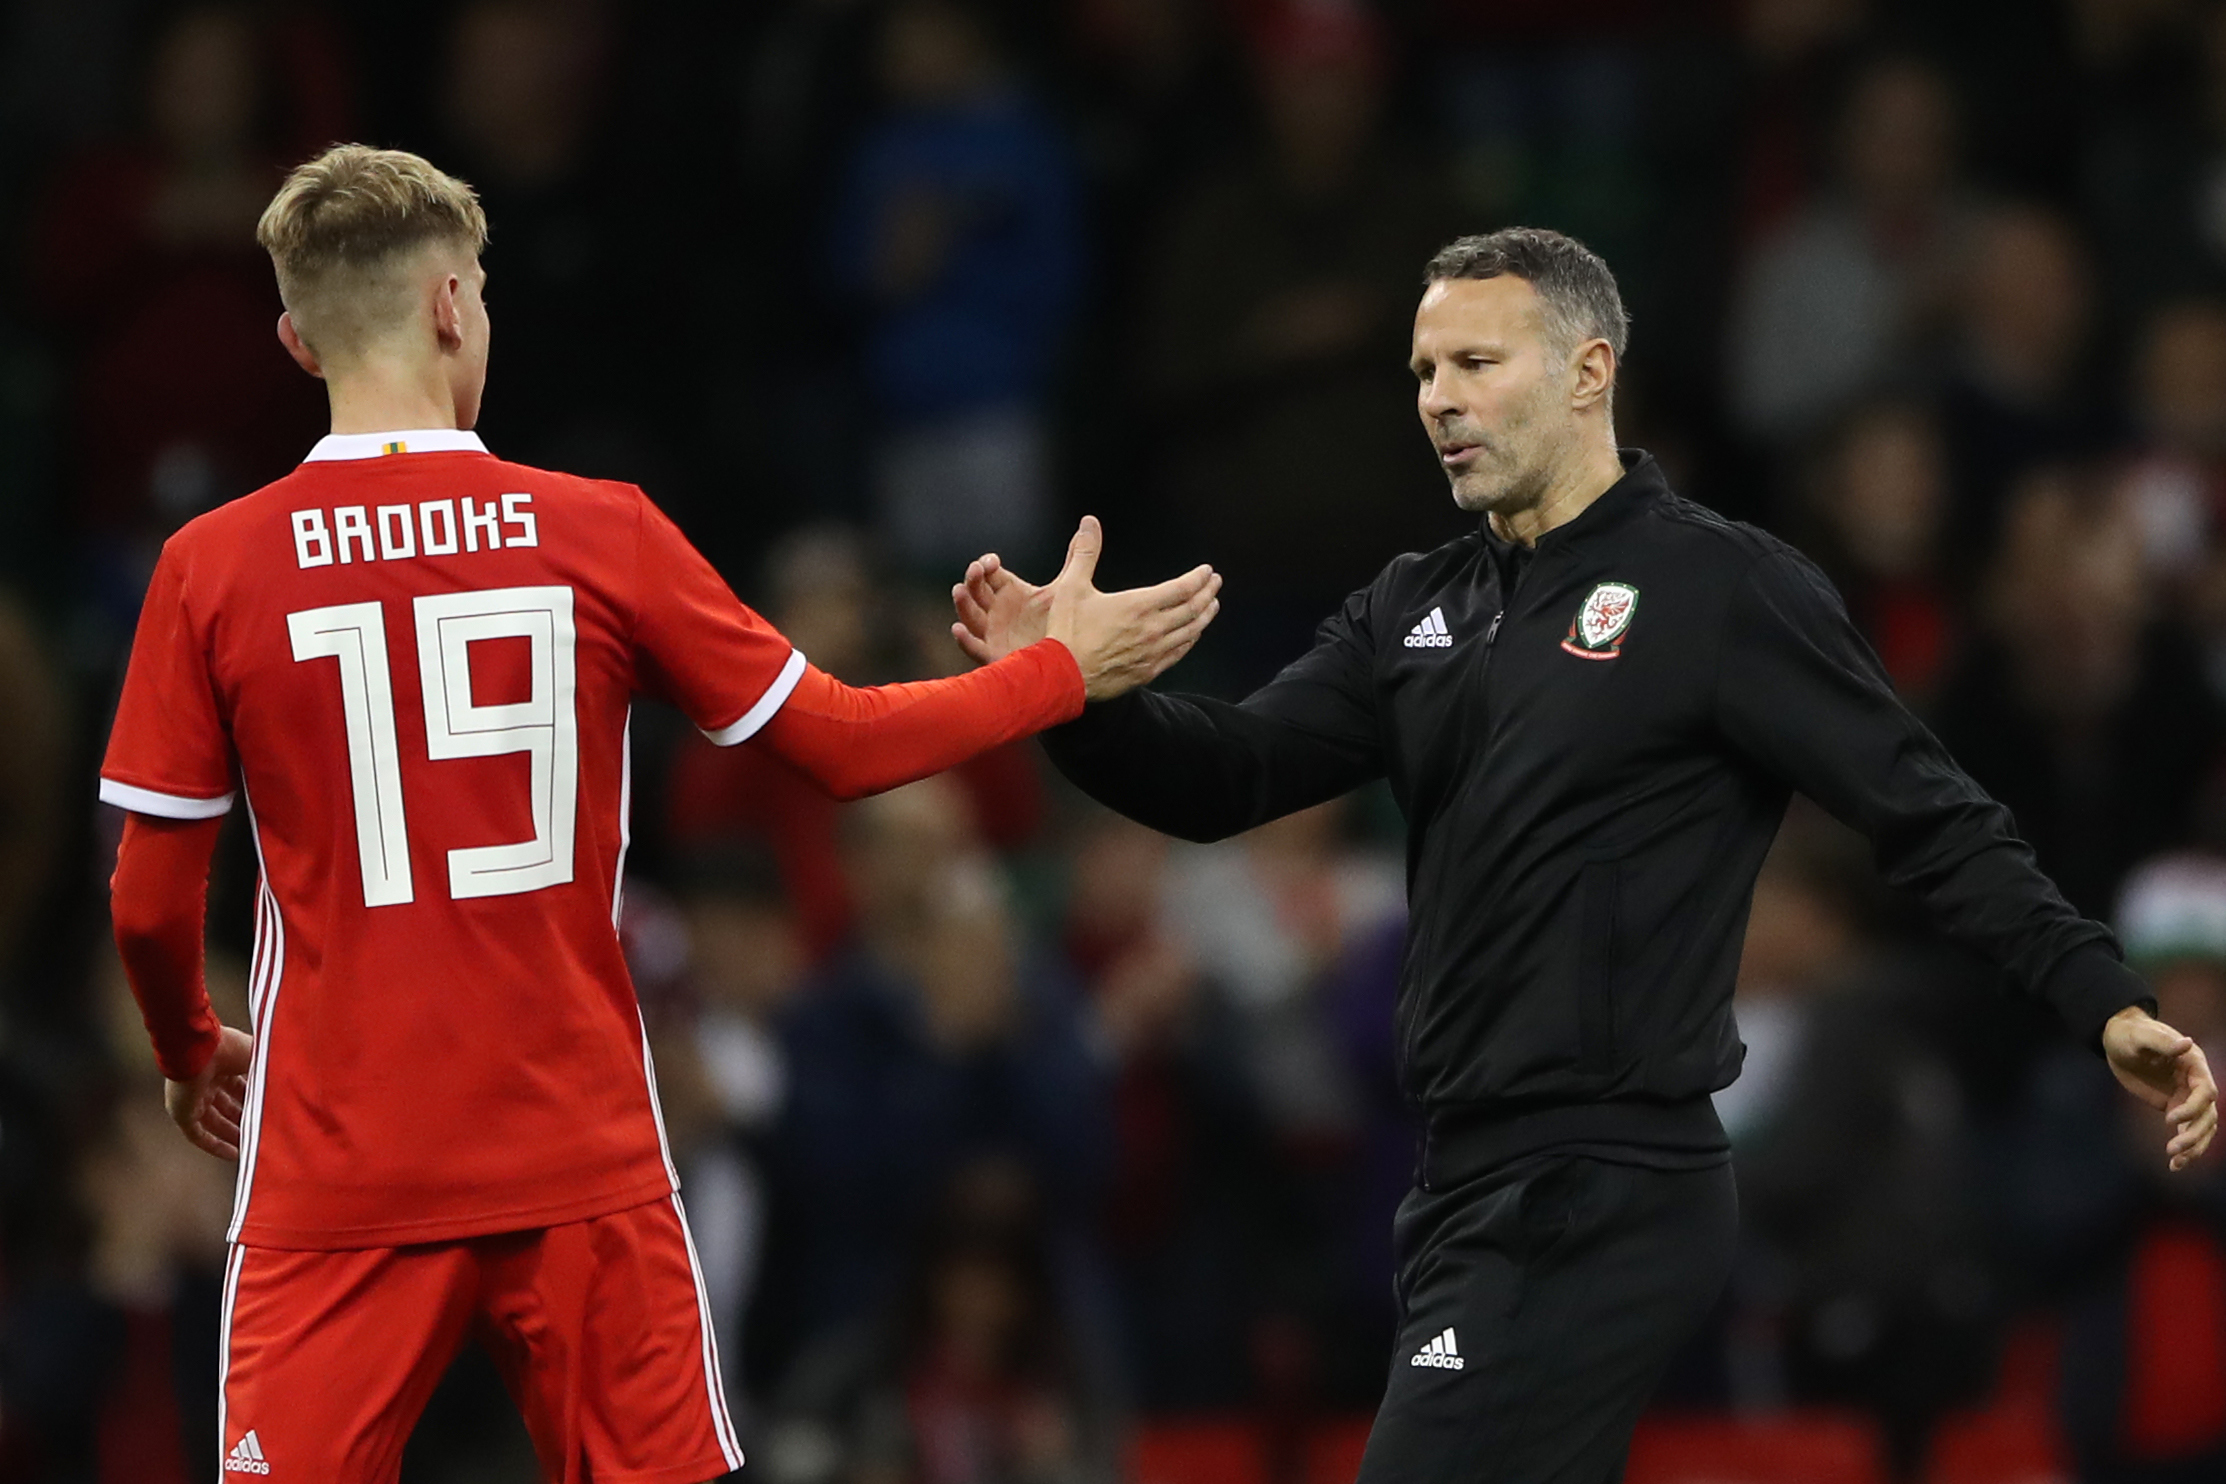 Wales boss Ryan Giggs says David Brooks 'will get better and better' with Cherries